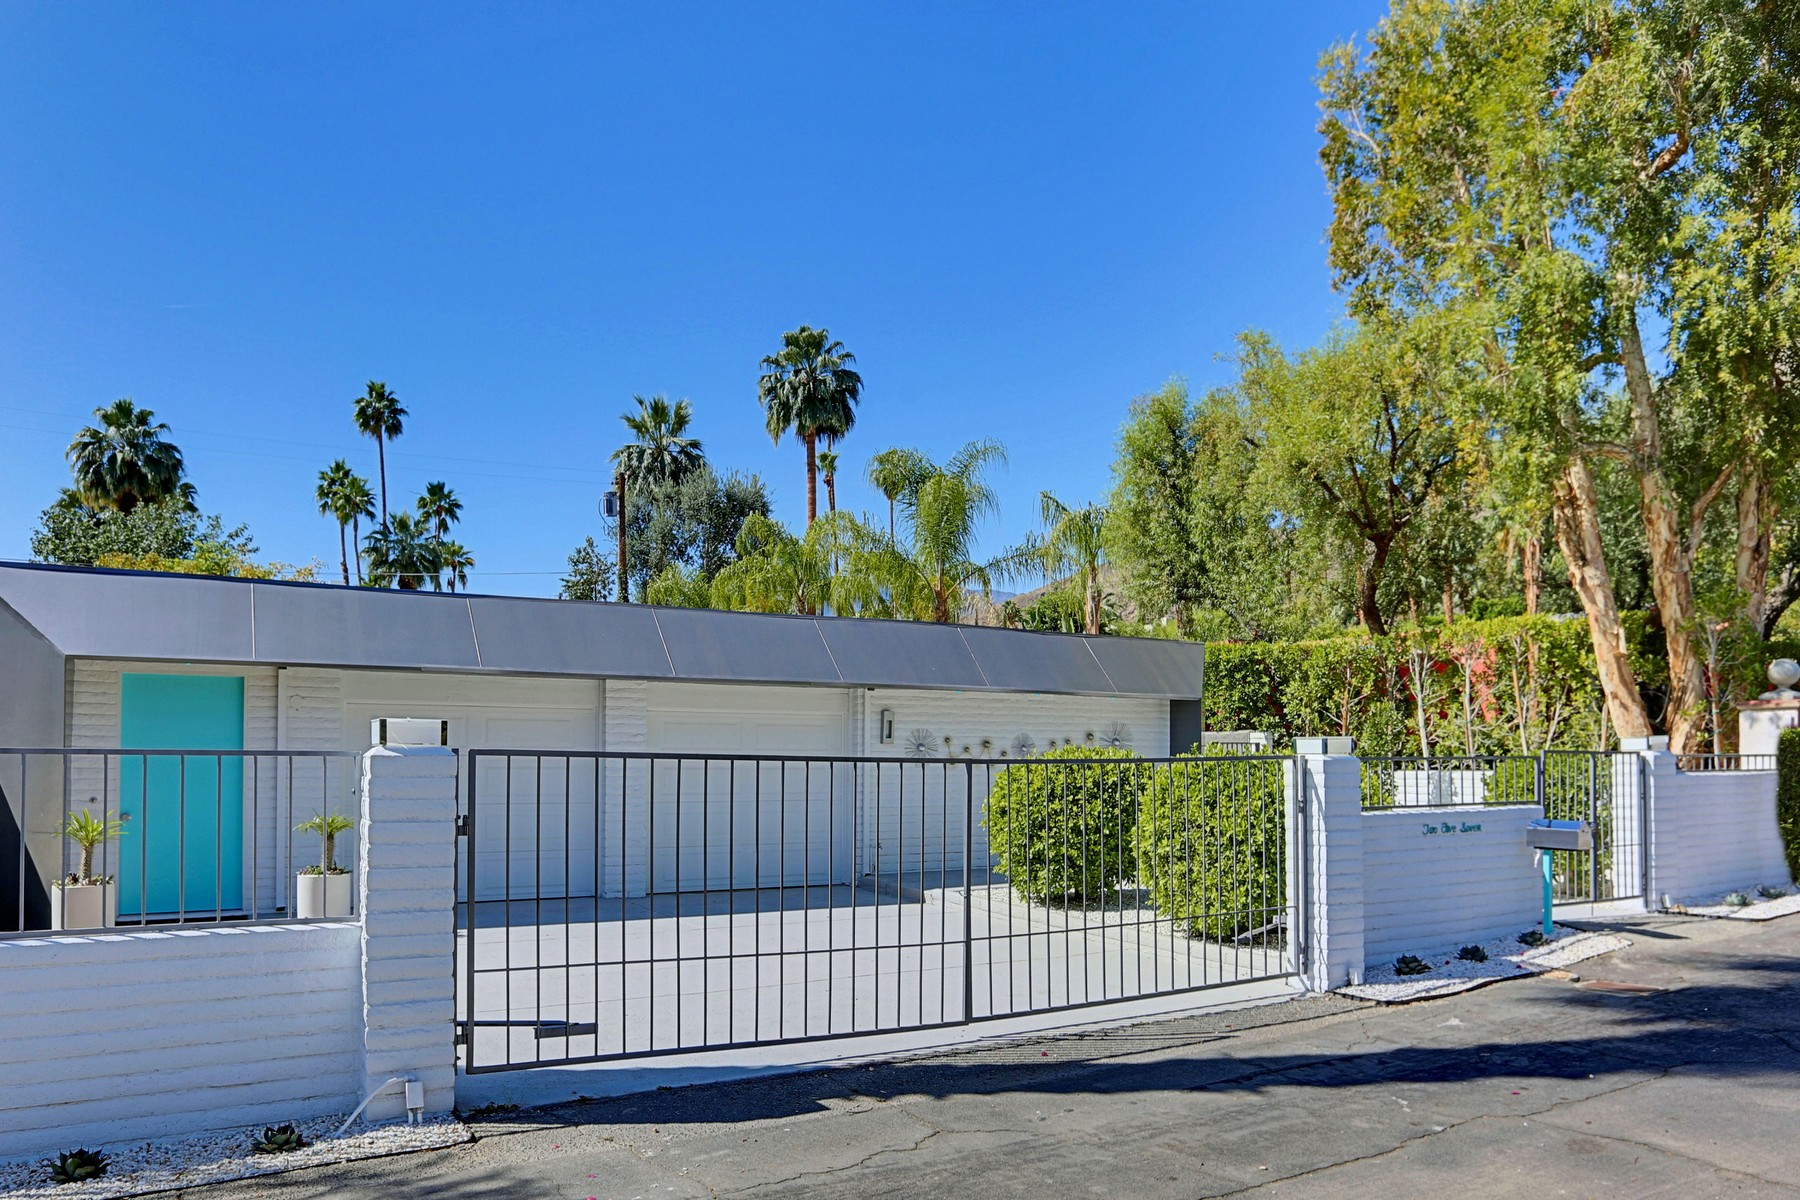 Single Family Home for Sale at 257 West El Camino Way Palm Springs, California, 92264 United States